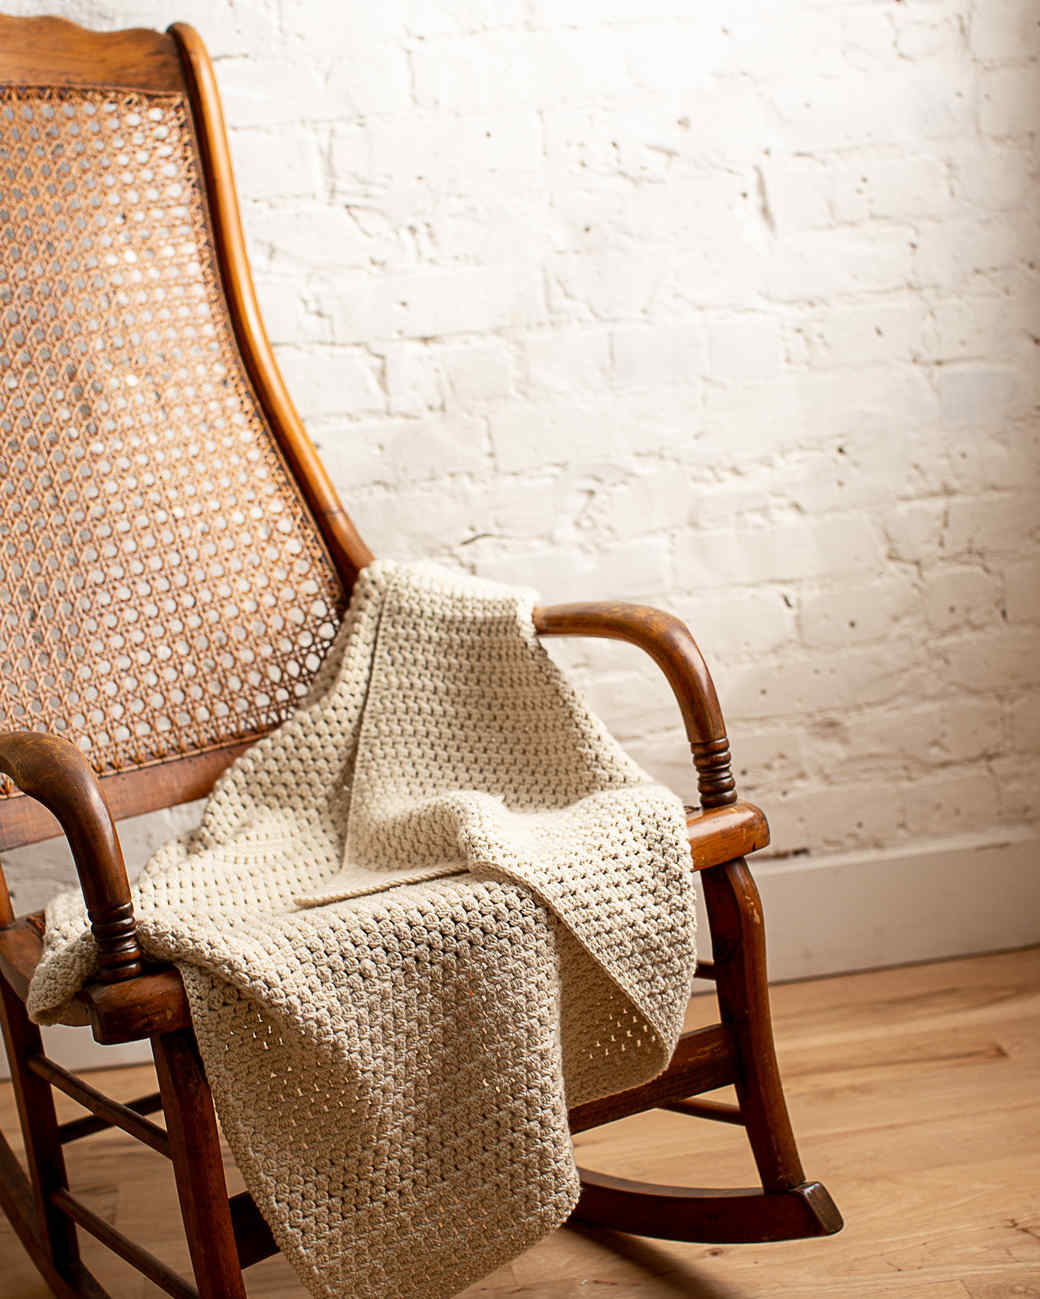 soft bobble crocheted baby blanket draped over a chair